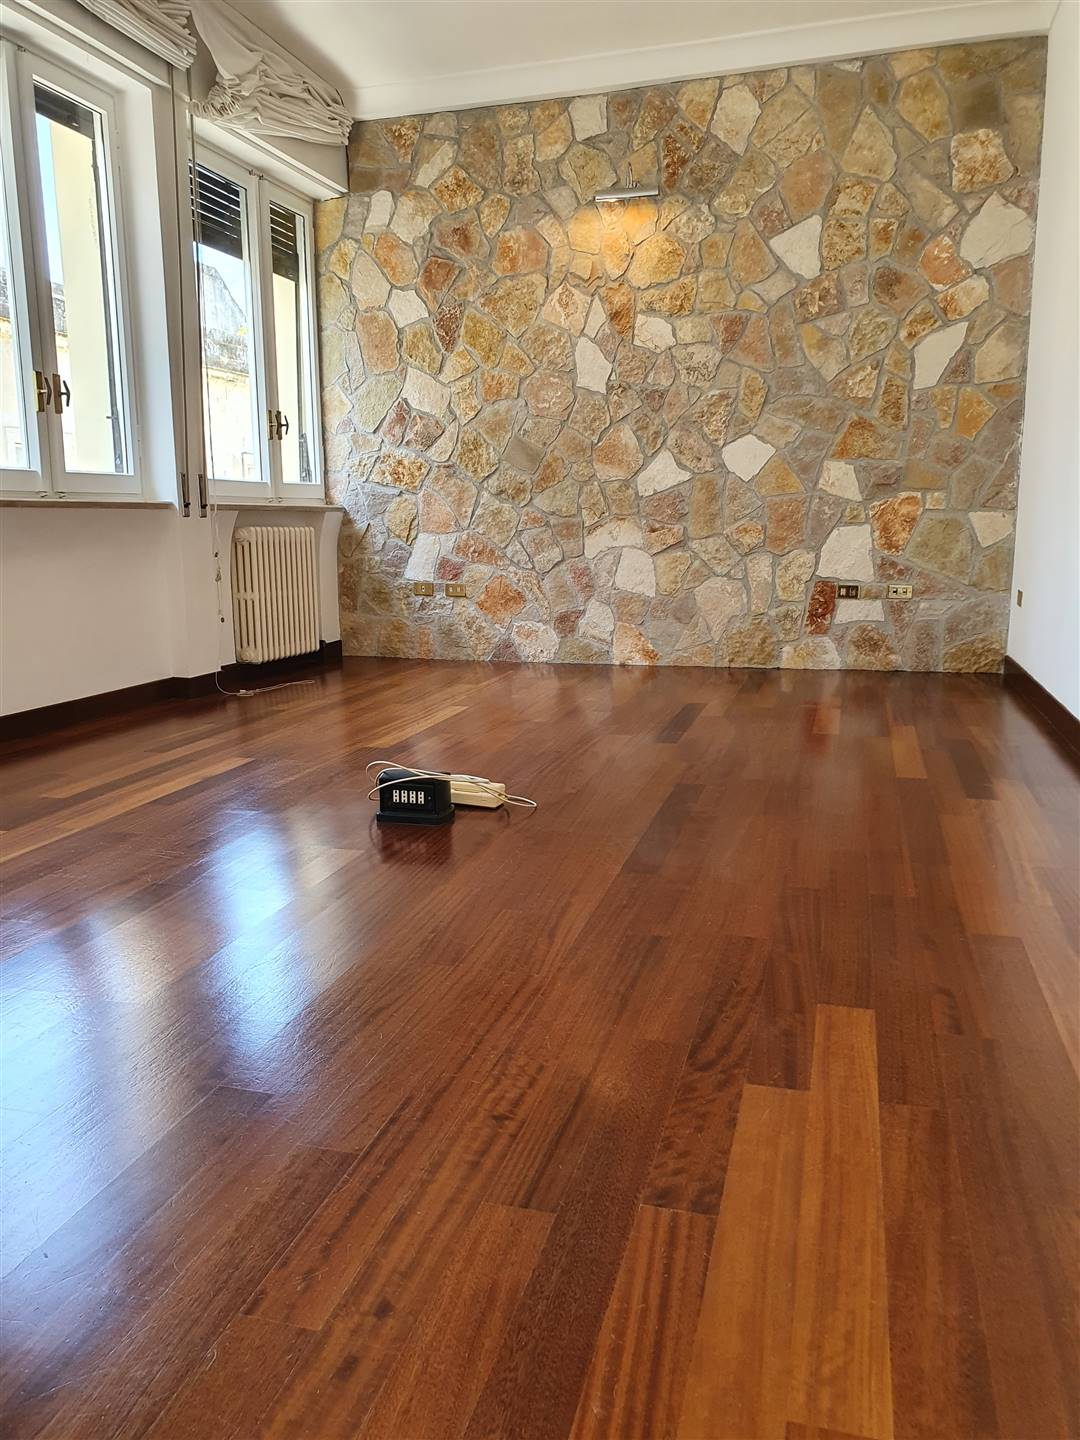 CENTRO STORICO, LECCE, Apartment for rent of 115 Sq. mt., Excellent Condition, Heating Individual heating system, Energetic class: G, placed at 3°,